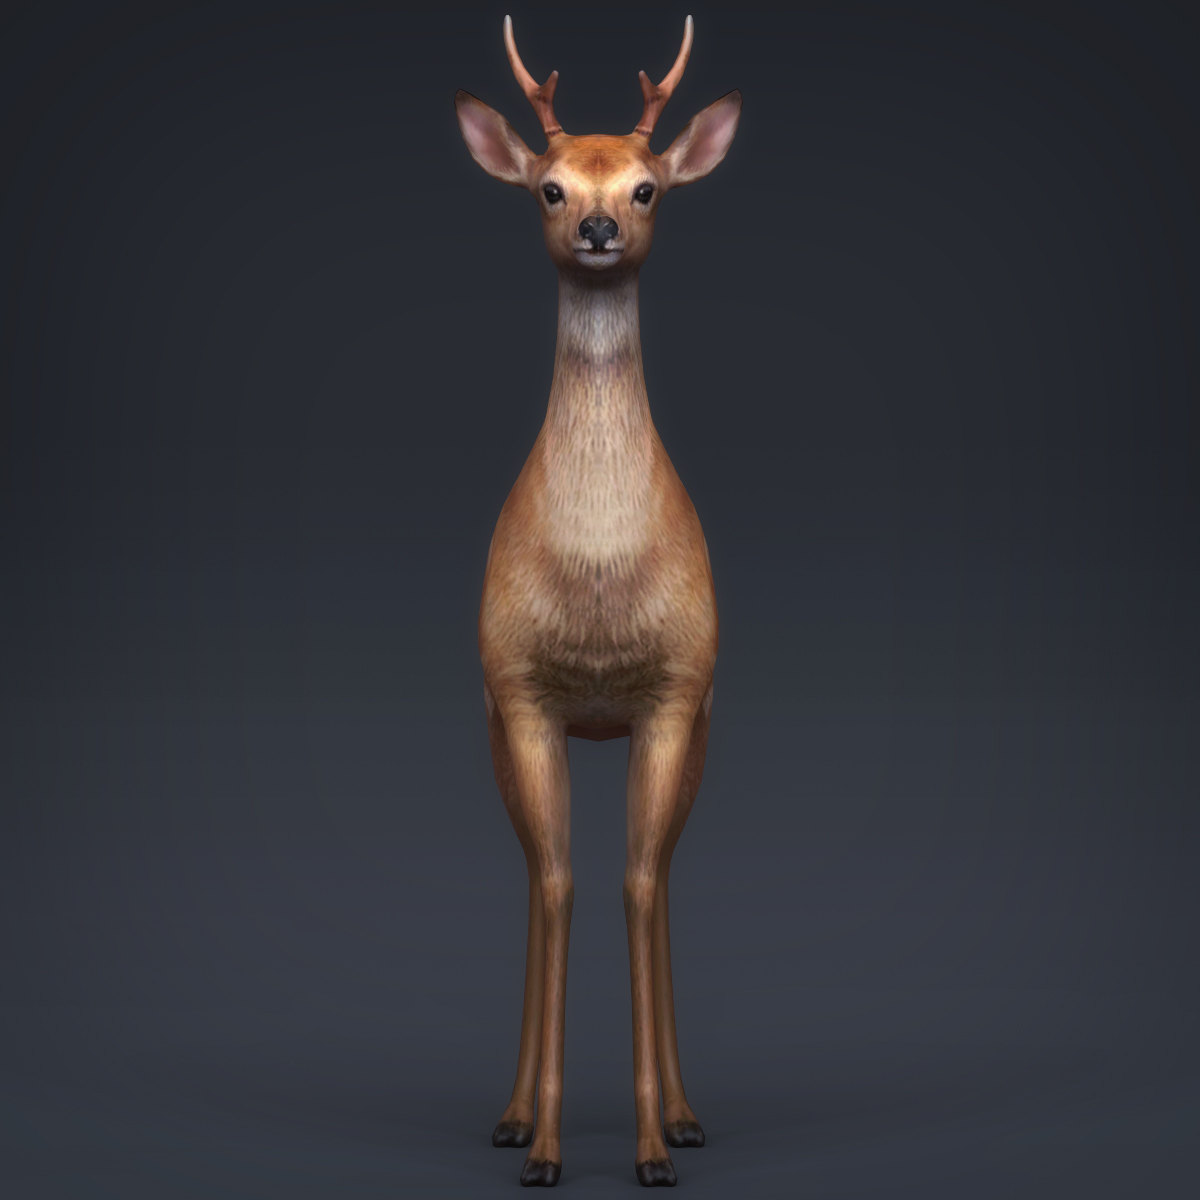 low poly realistic deer 3d model max fbx c4d ma mb obj 223711